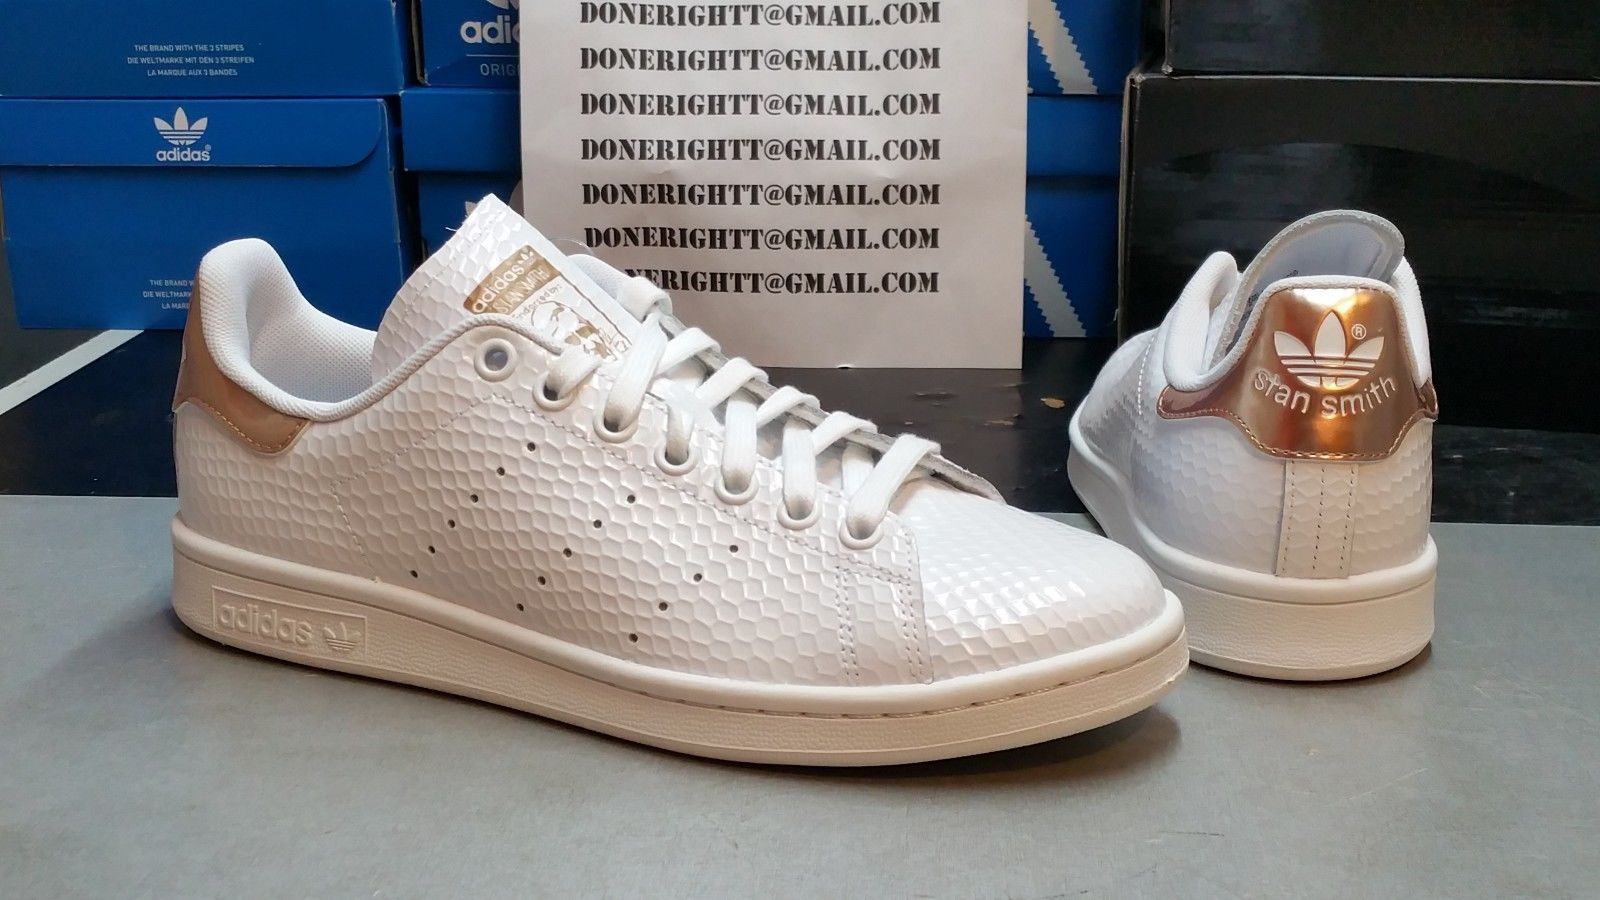 da20a083e23fe3 Womens Adidas Stan Smith Copper White Kettle Snakeskin Metallic Rose Gold  Yeezy | eBay Chaussure Tendance